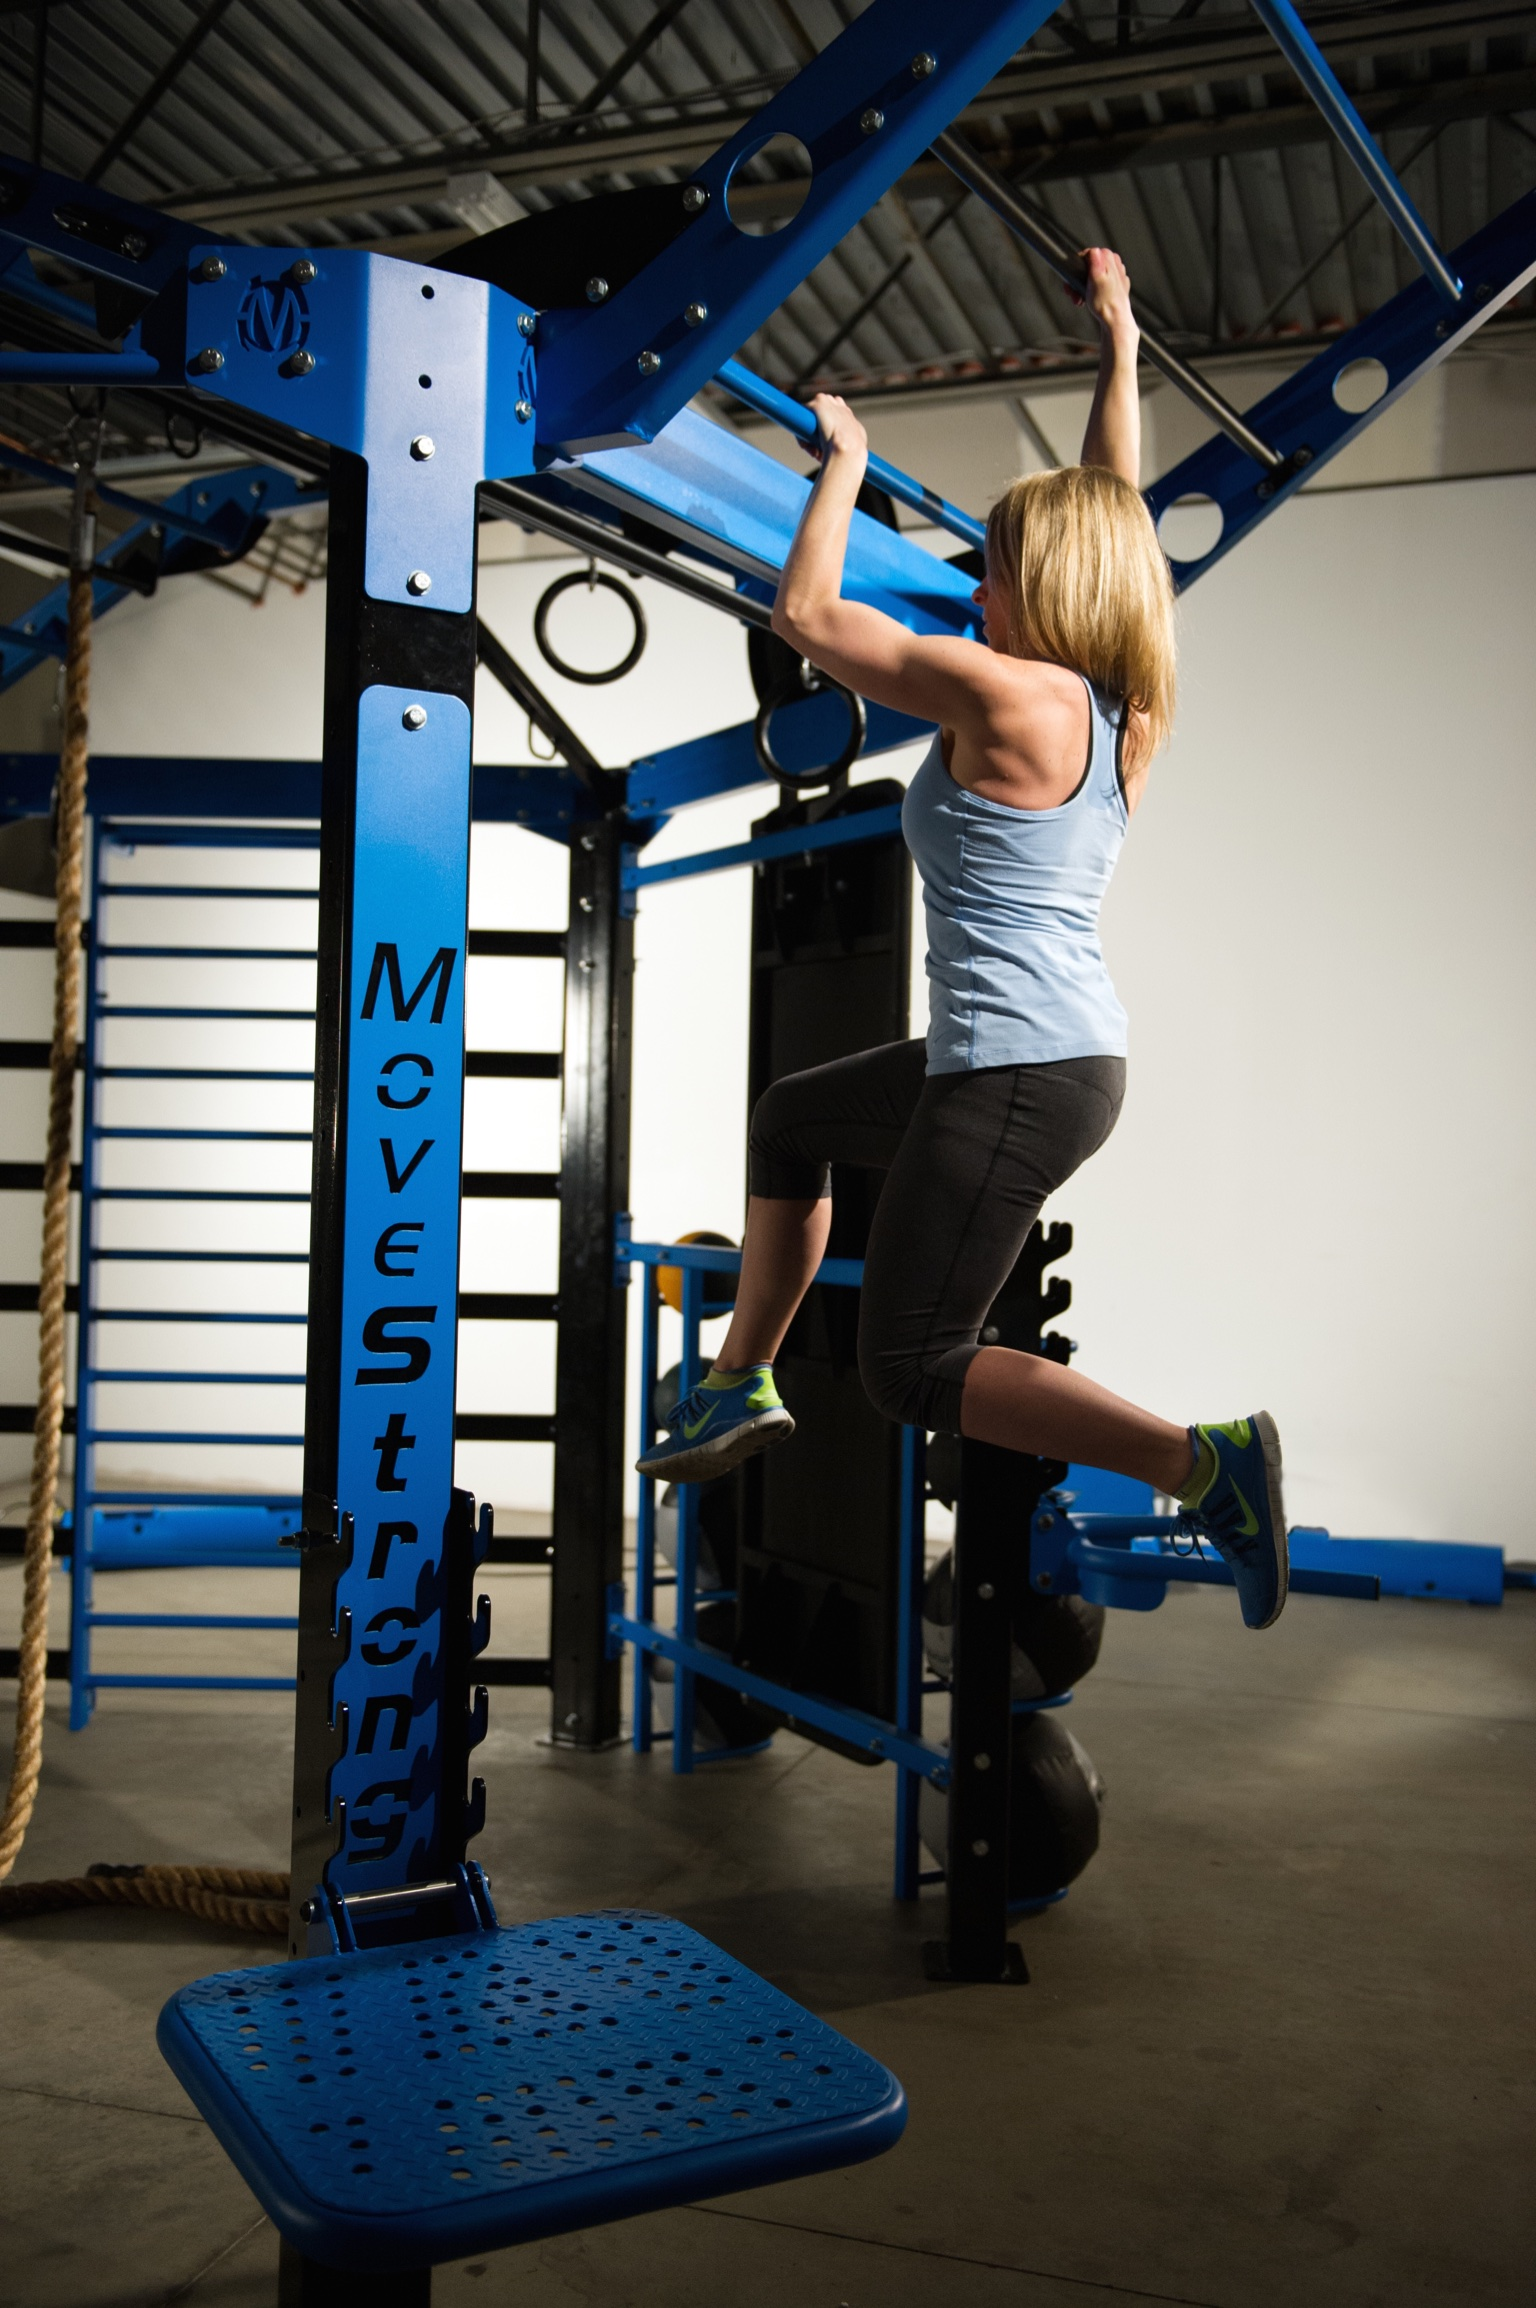 move_strong-189.jpg